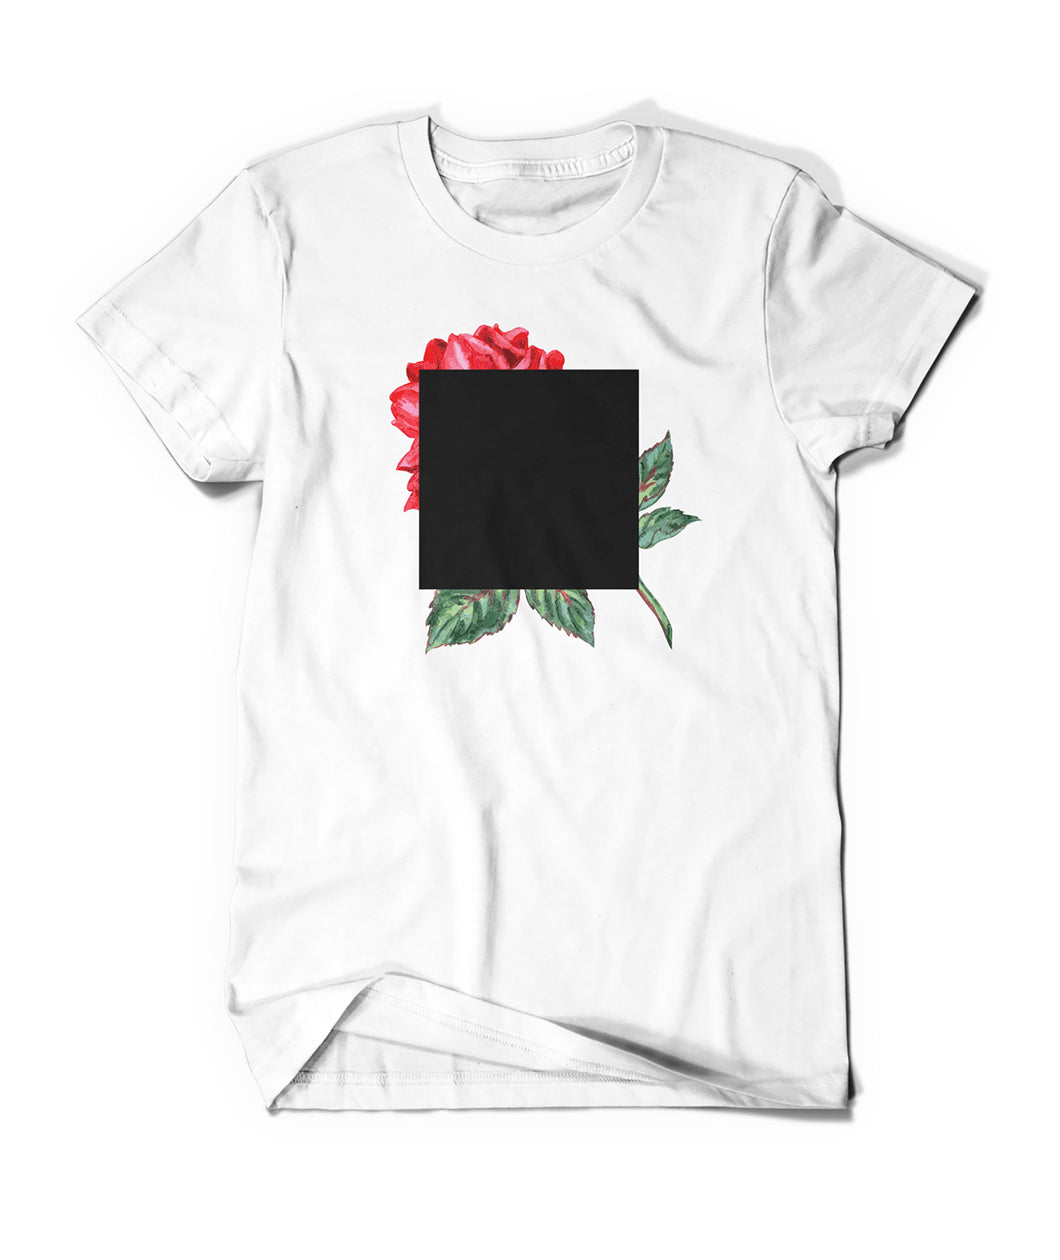 Agnes Martin Inspired Rose Art Shirt